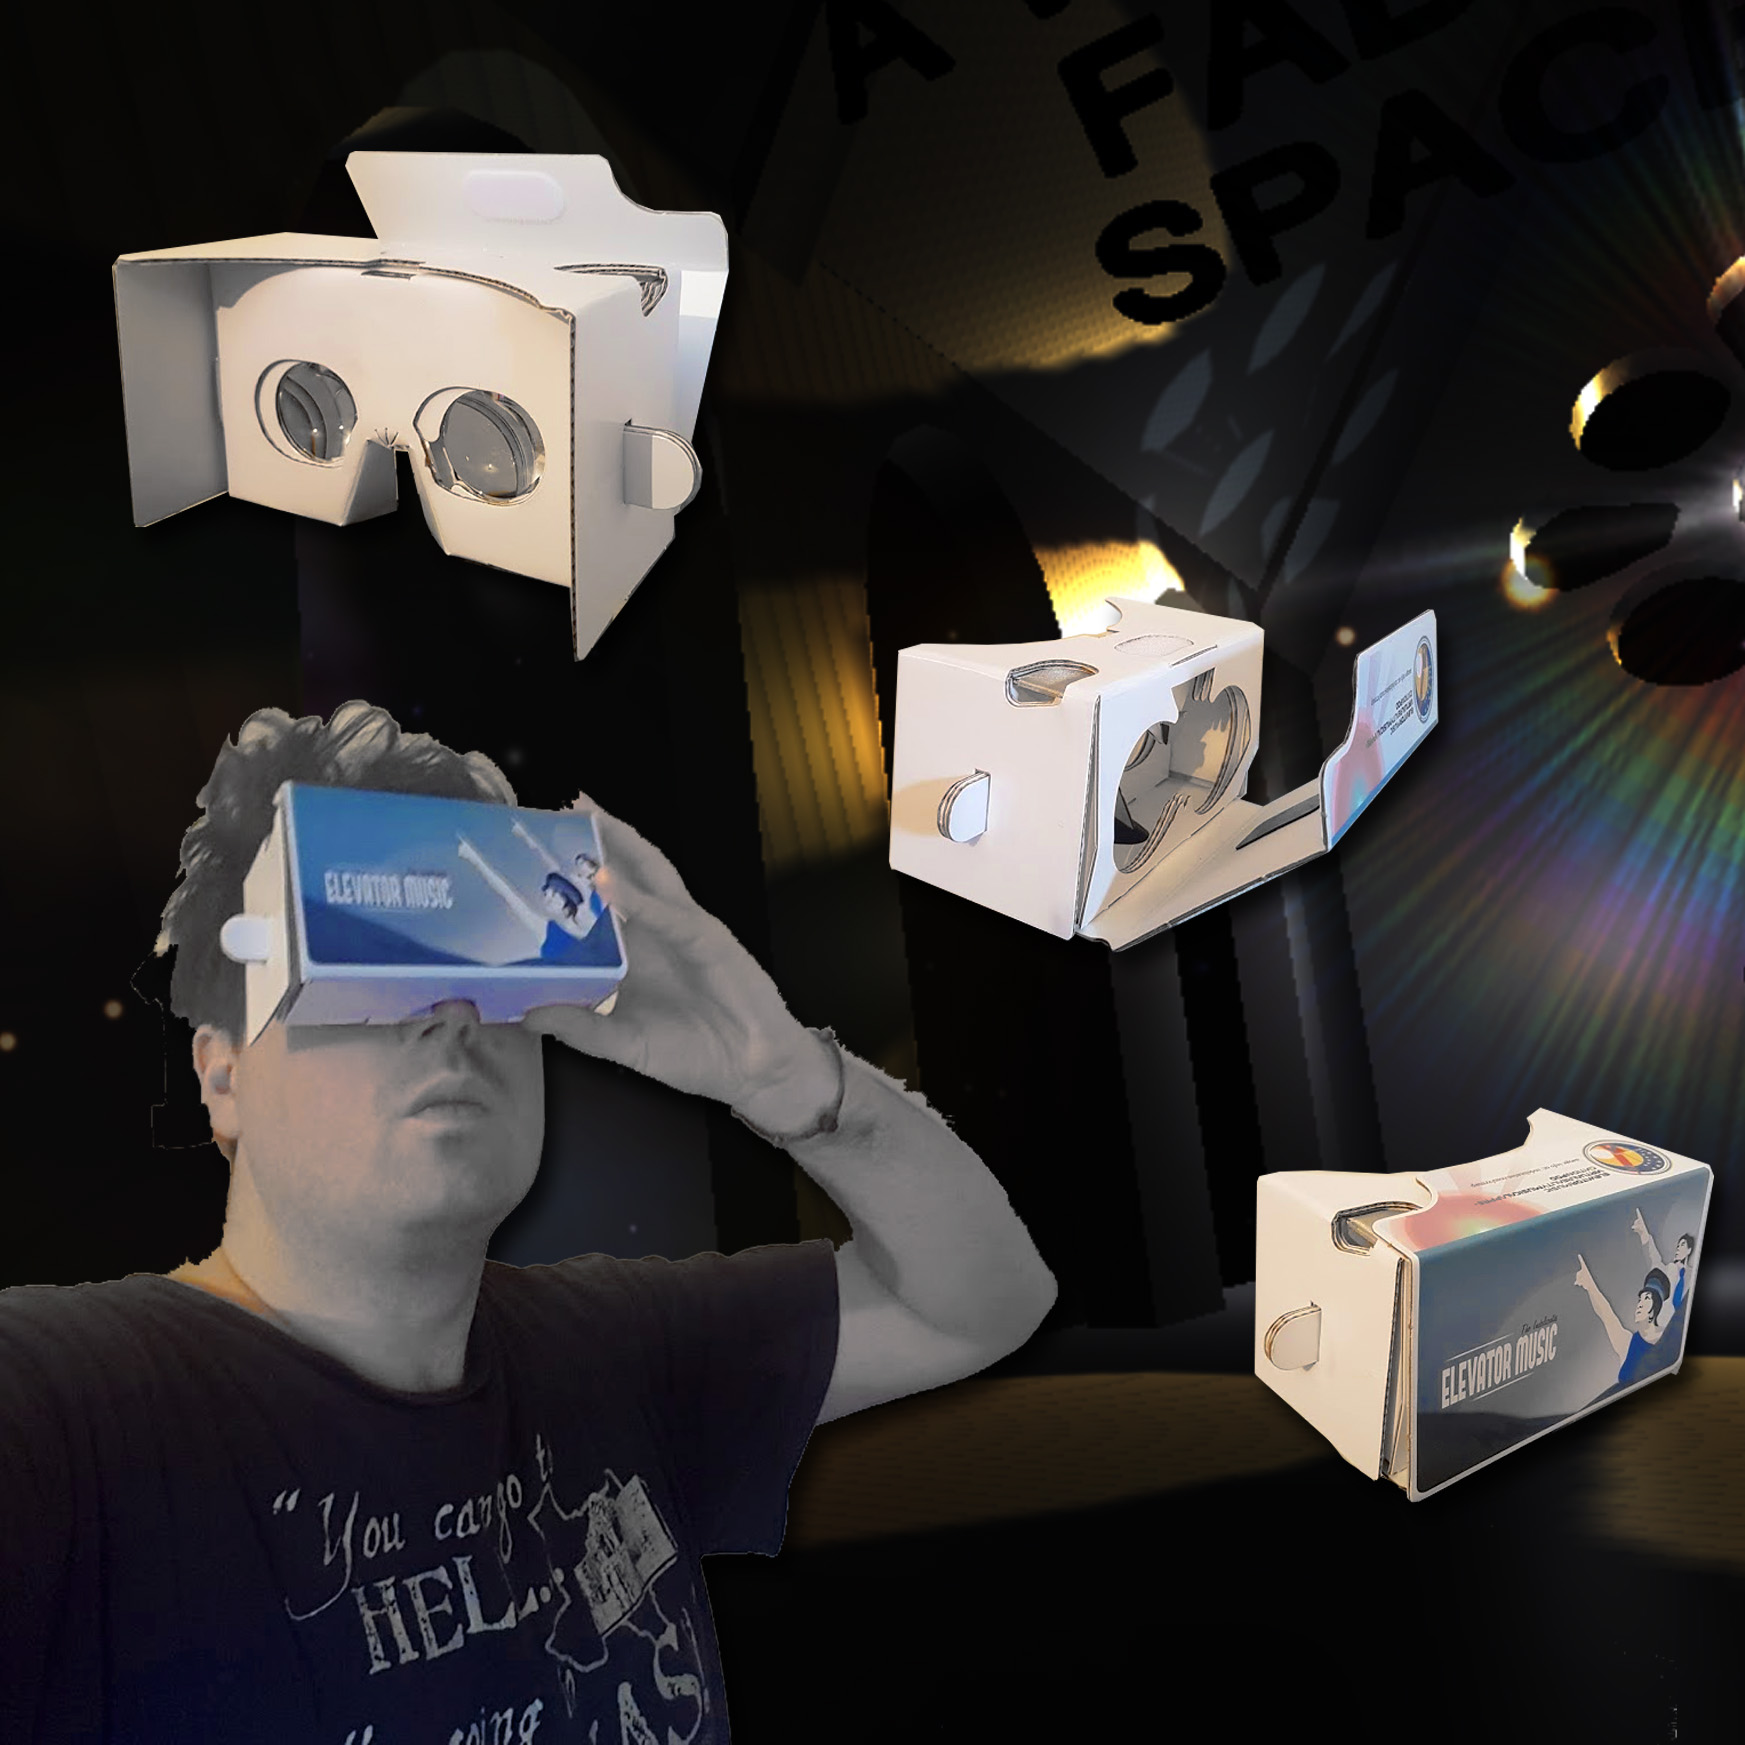 Vr Viewer Pic